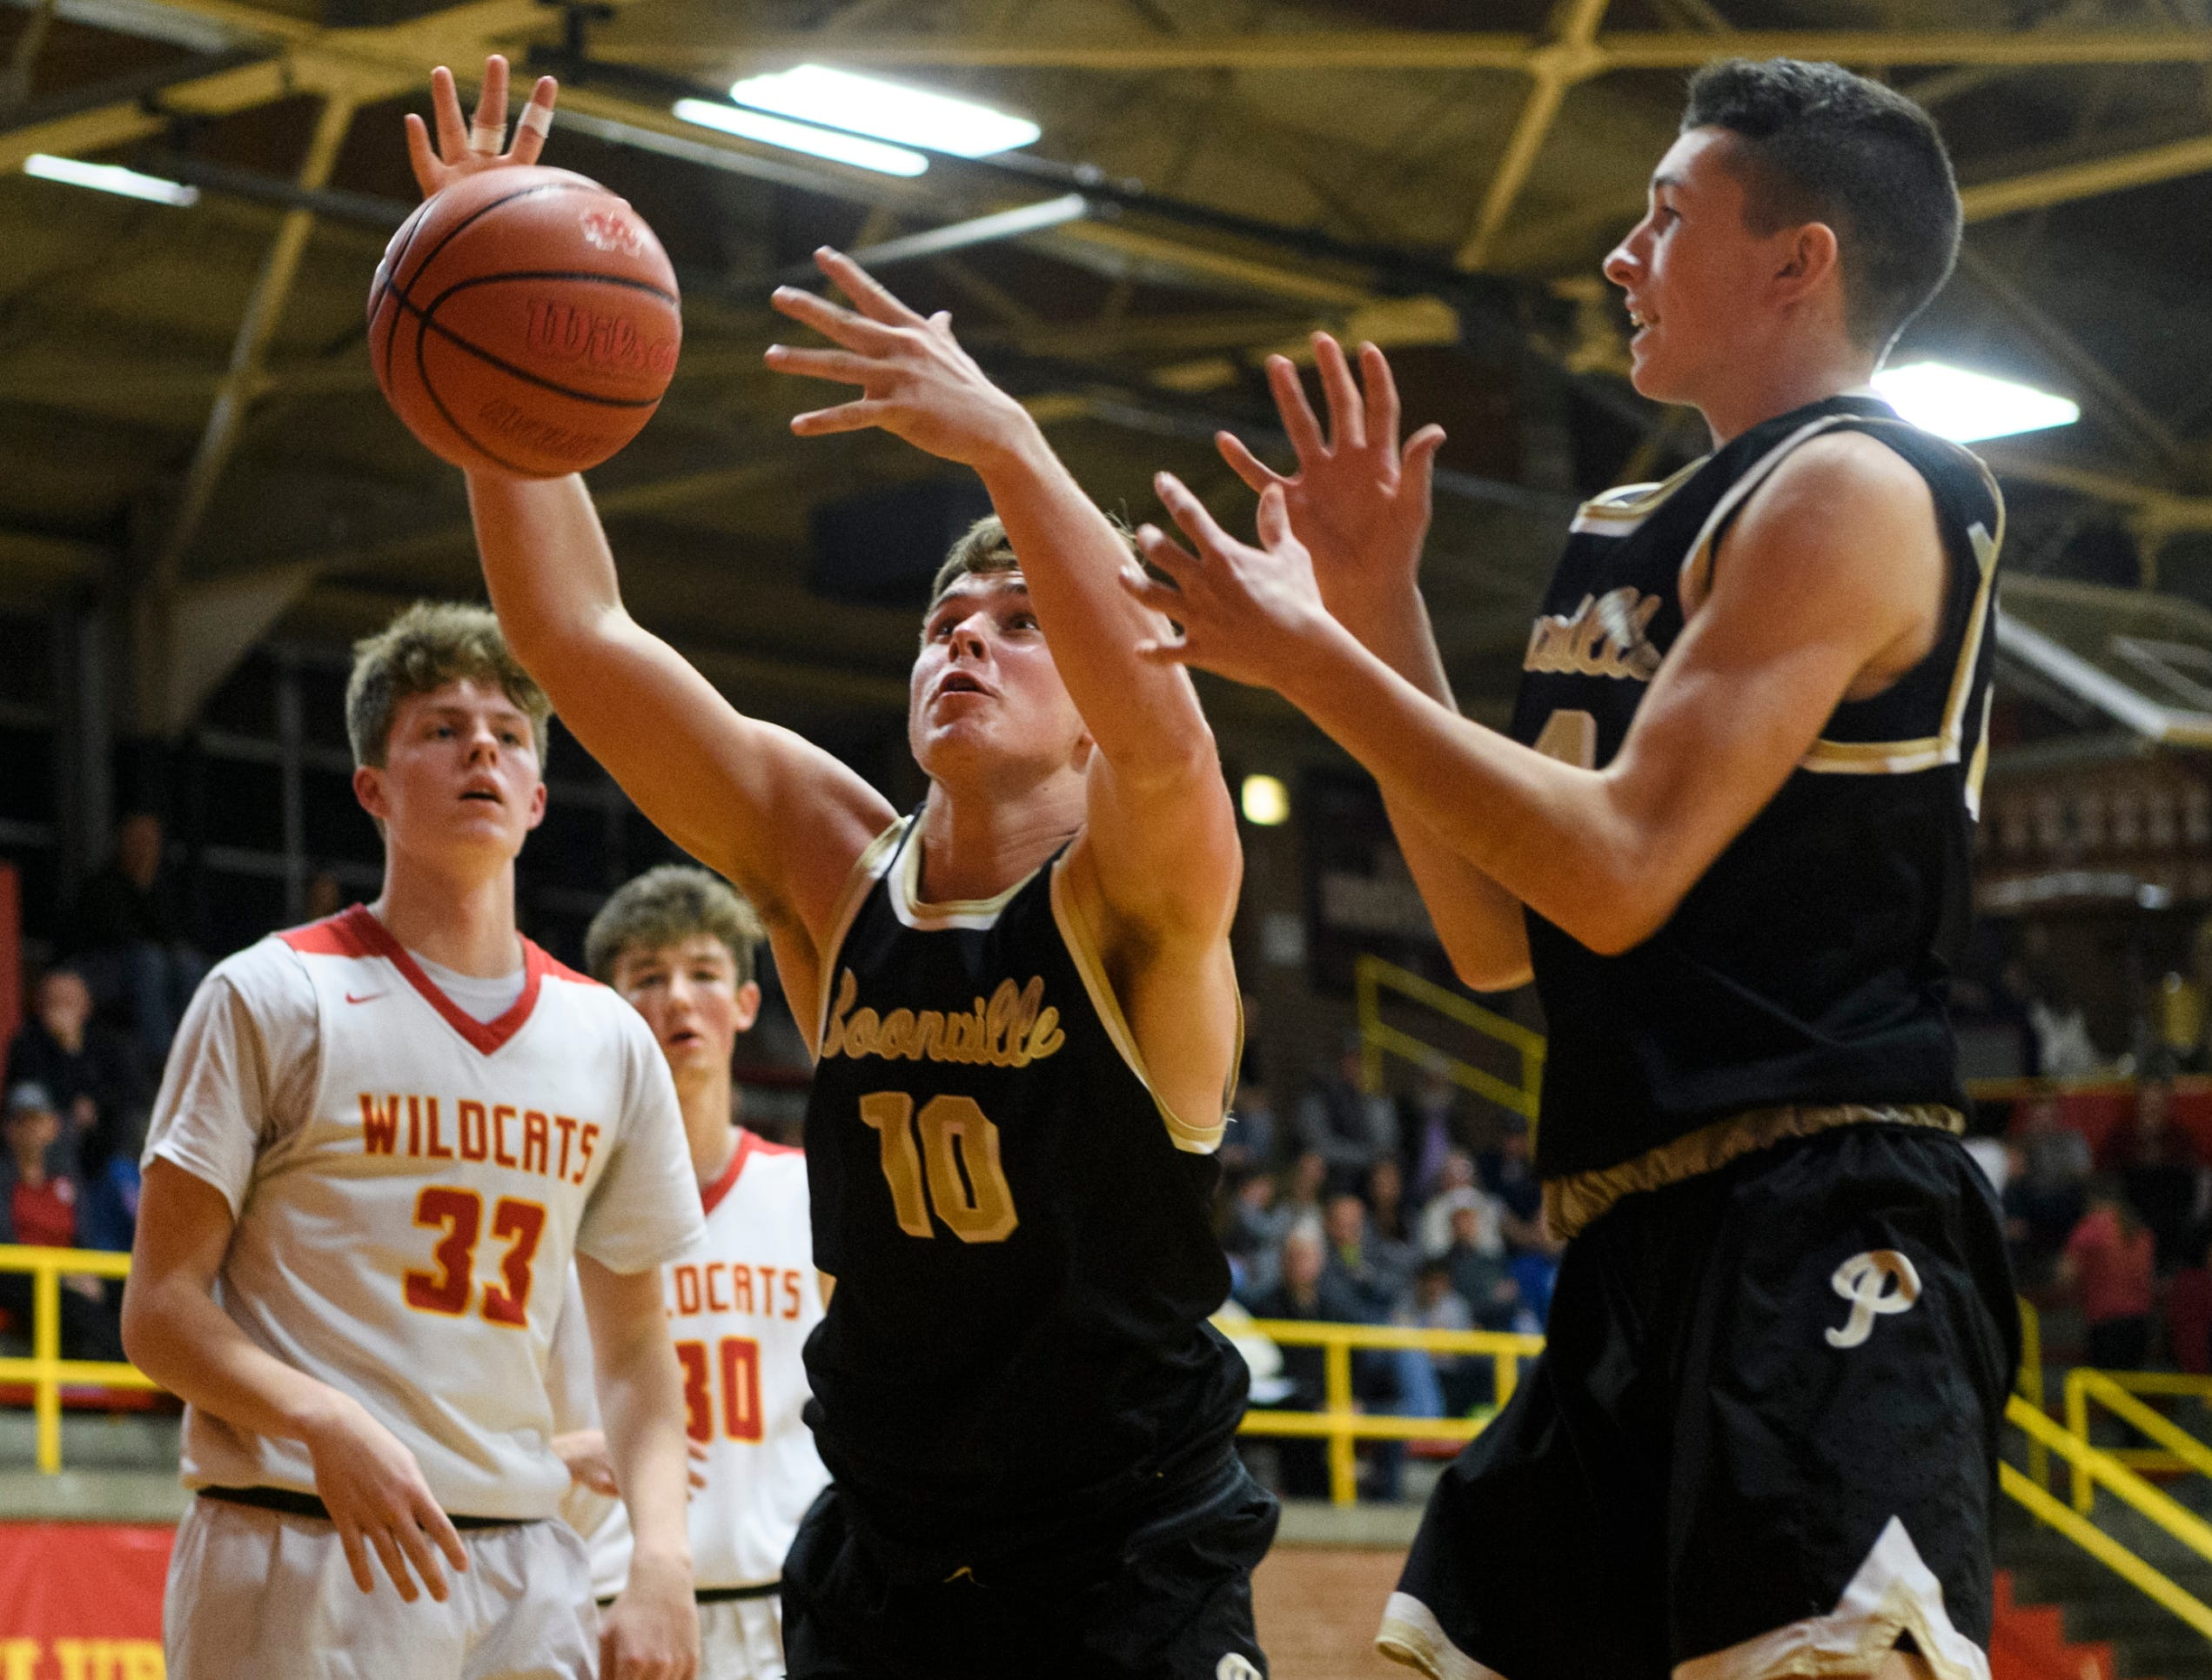 Boonville's Jackson Phillips (10) grabs the rebound during the third quarter against the Mater Dei Wildcats at Mater Dei High School in Evansville, Ind., Saturday, Jan. 5, 2019. The Wildcats defeated the Pioneers, 93-65.